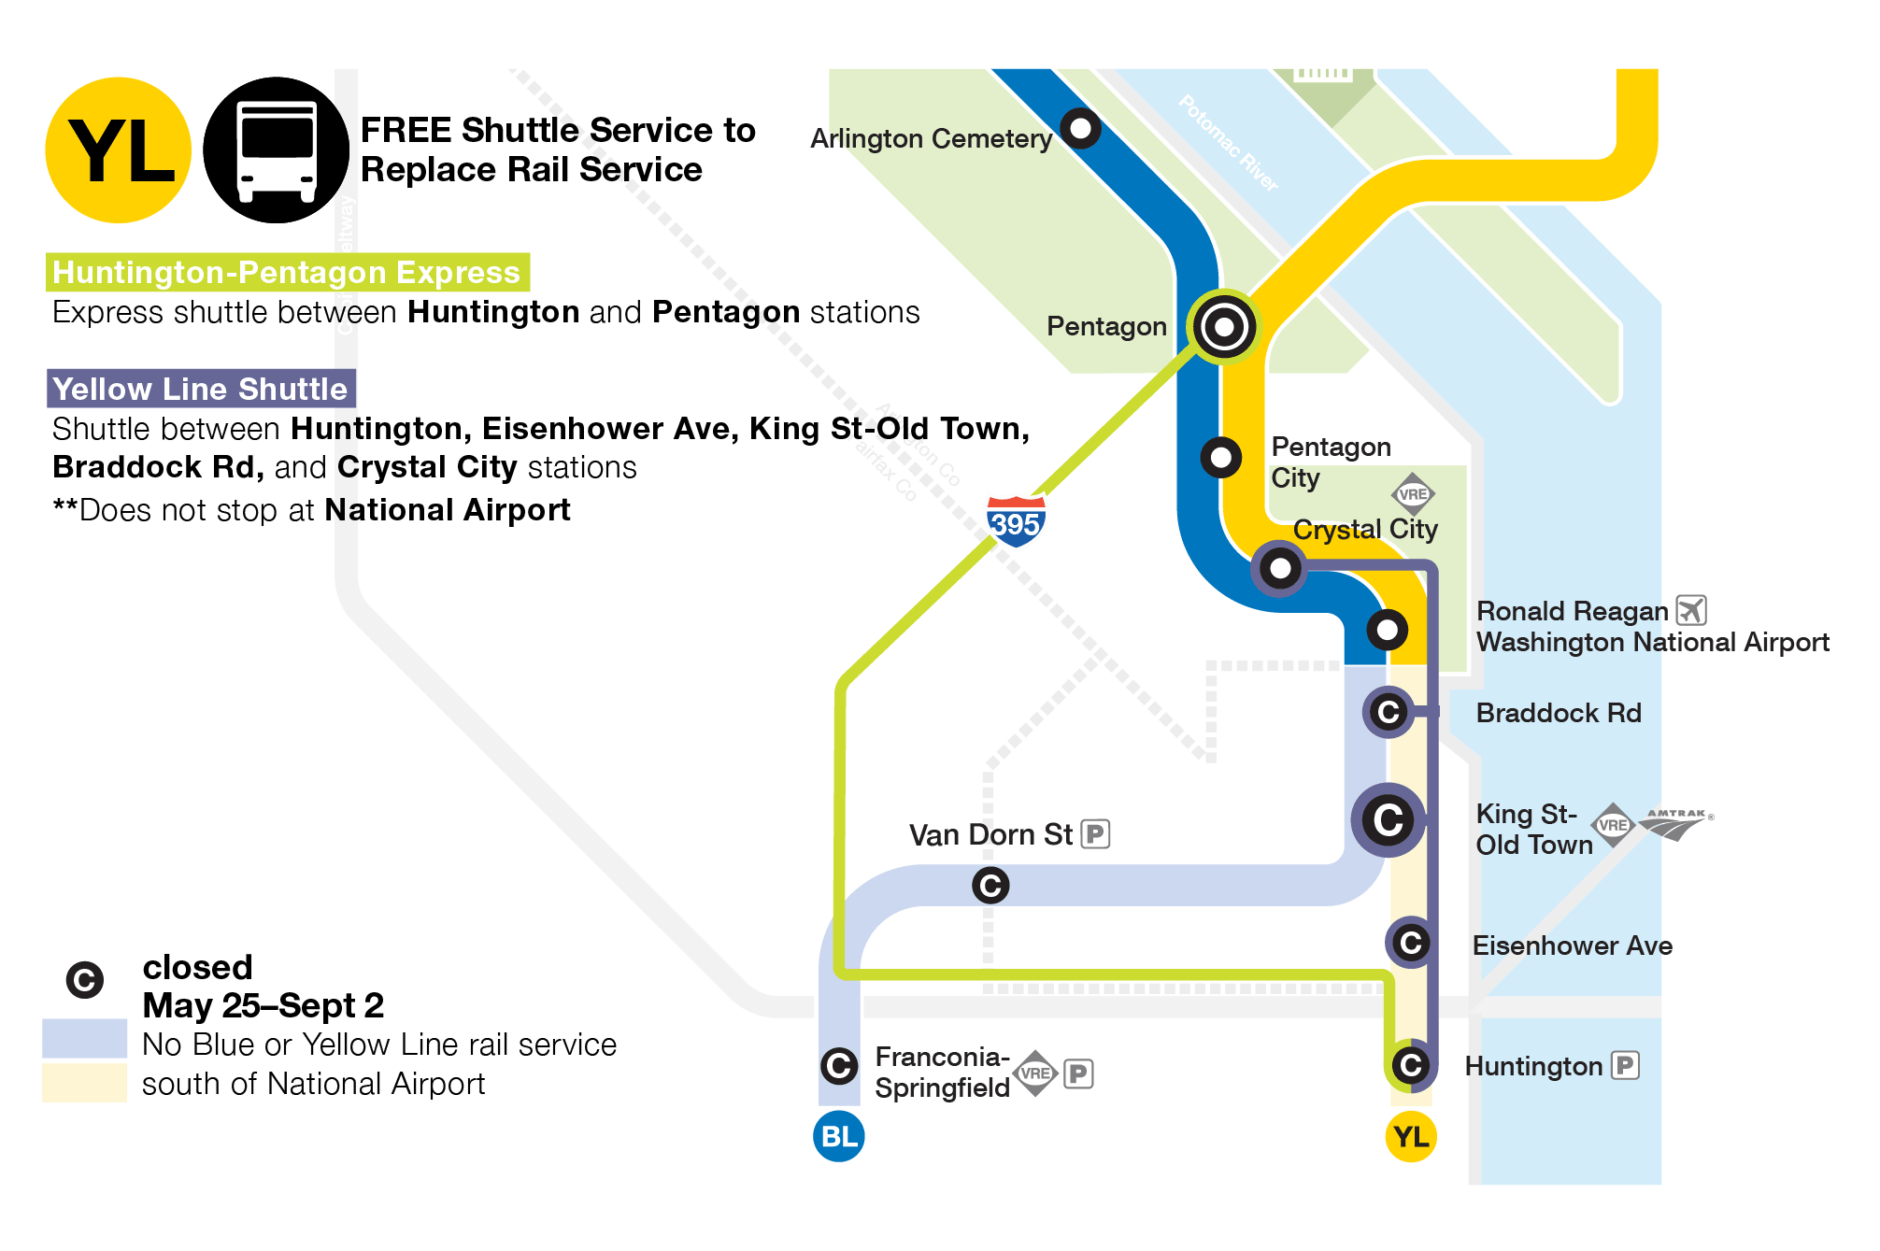 There will be an express shuttle between Huntington and Pentagon stations available. The Yellow Line shutdown will have a shuttle between Huntington, Eisenhower Avenue, King Street-Old Town, Braddock Road and Crystal City stations. (Courtesy Metro)